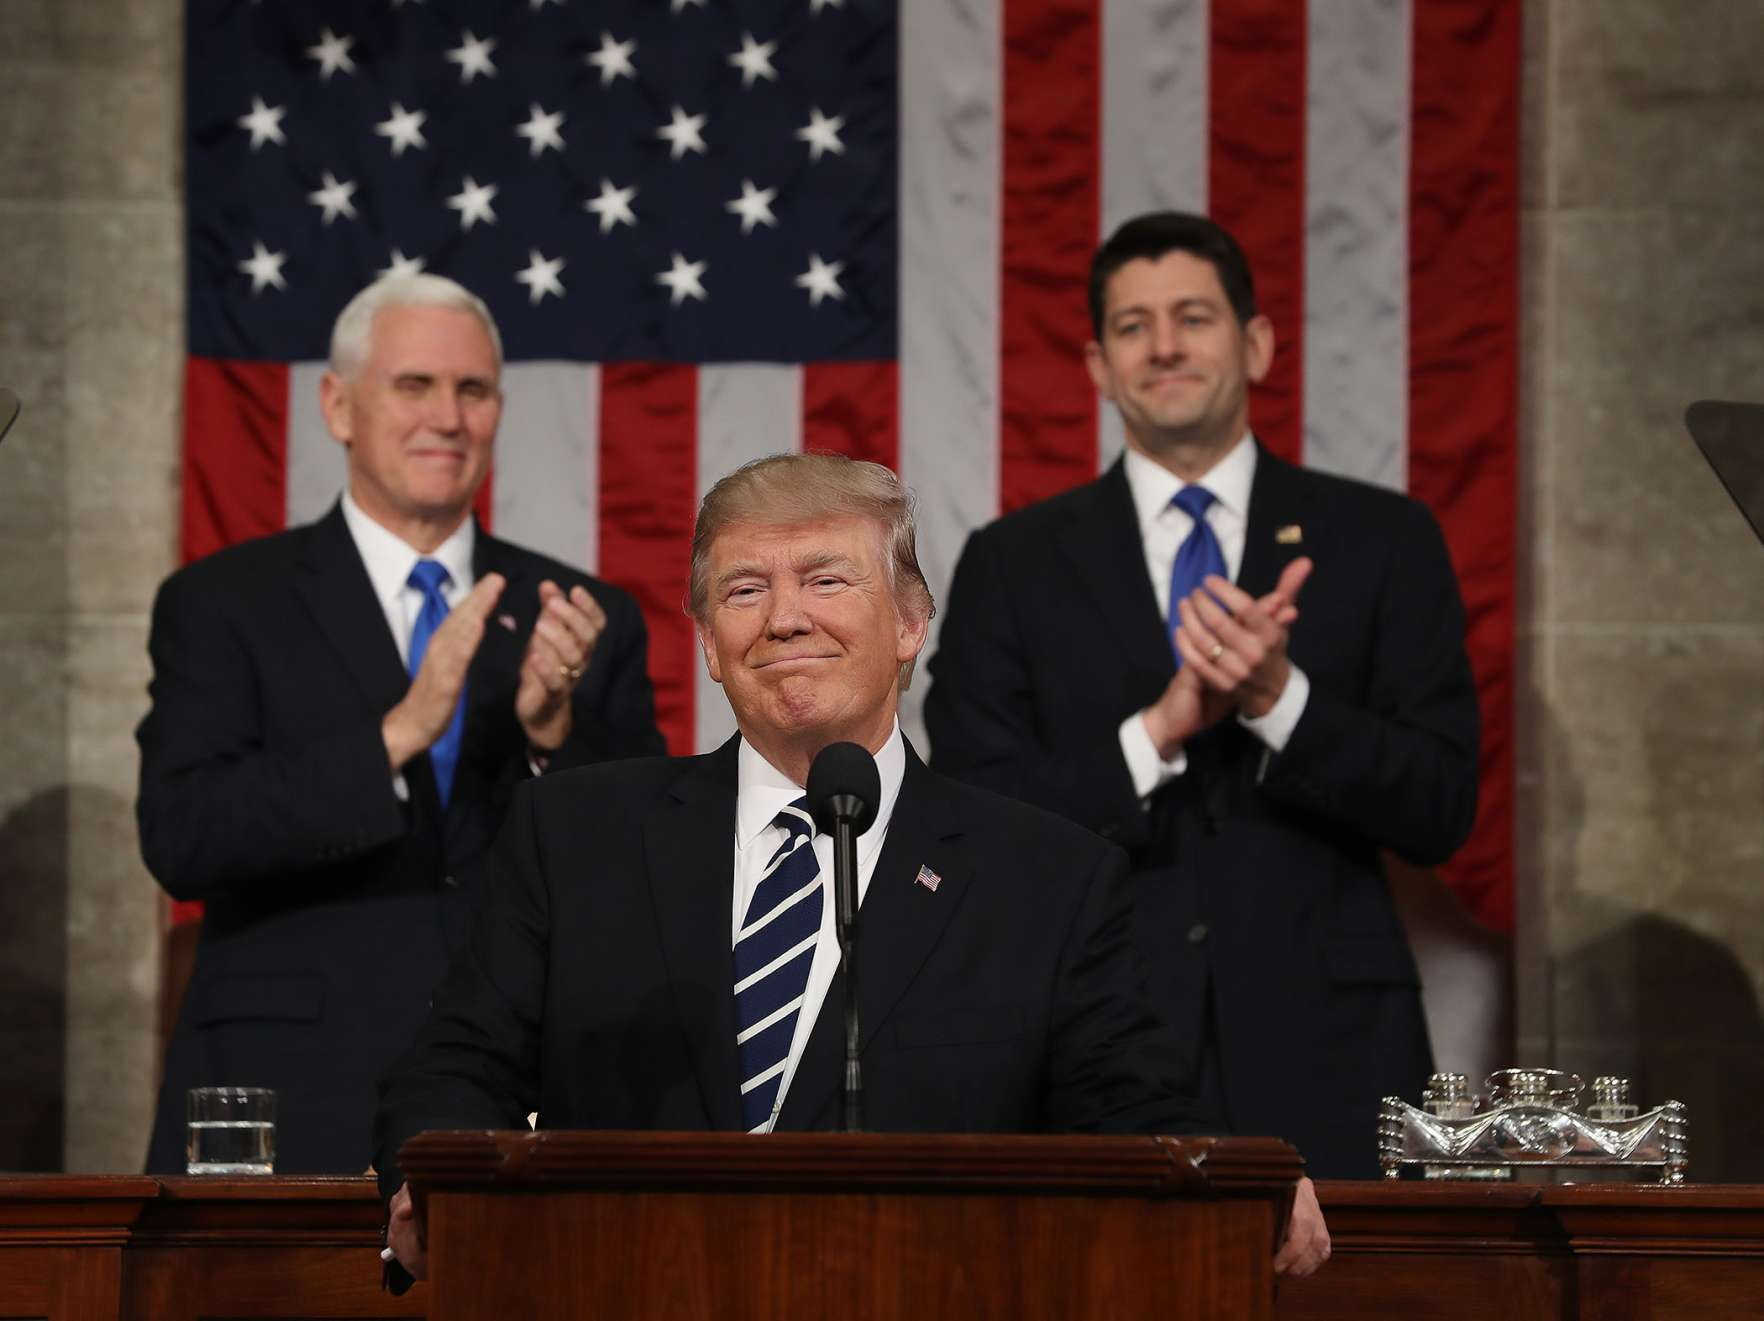 U.S. President Donald Trump, center, smiles as U.S. Vice President Mike Pence, left, and U.S. House Speaker Paul Ryan, a Republican from Wisconsin, applaud during a joint session of Congress in Washington, D.C., U.S., on Tuesday, Feb. 28, 2017.